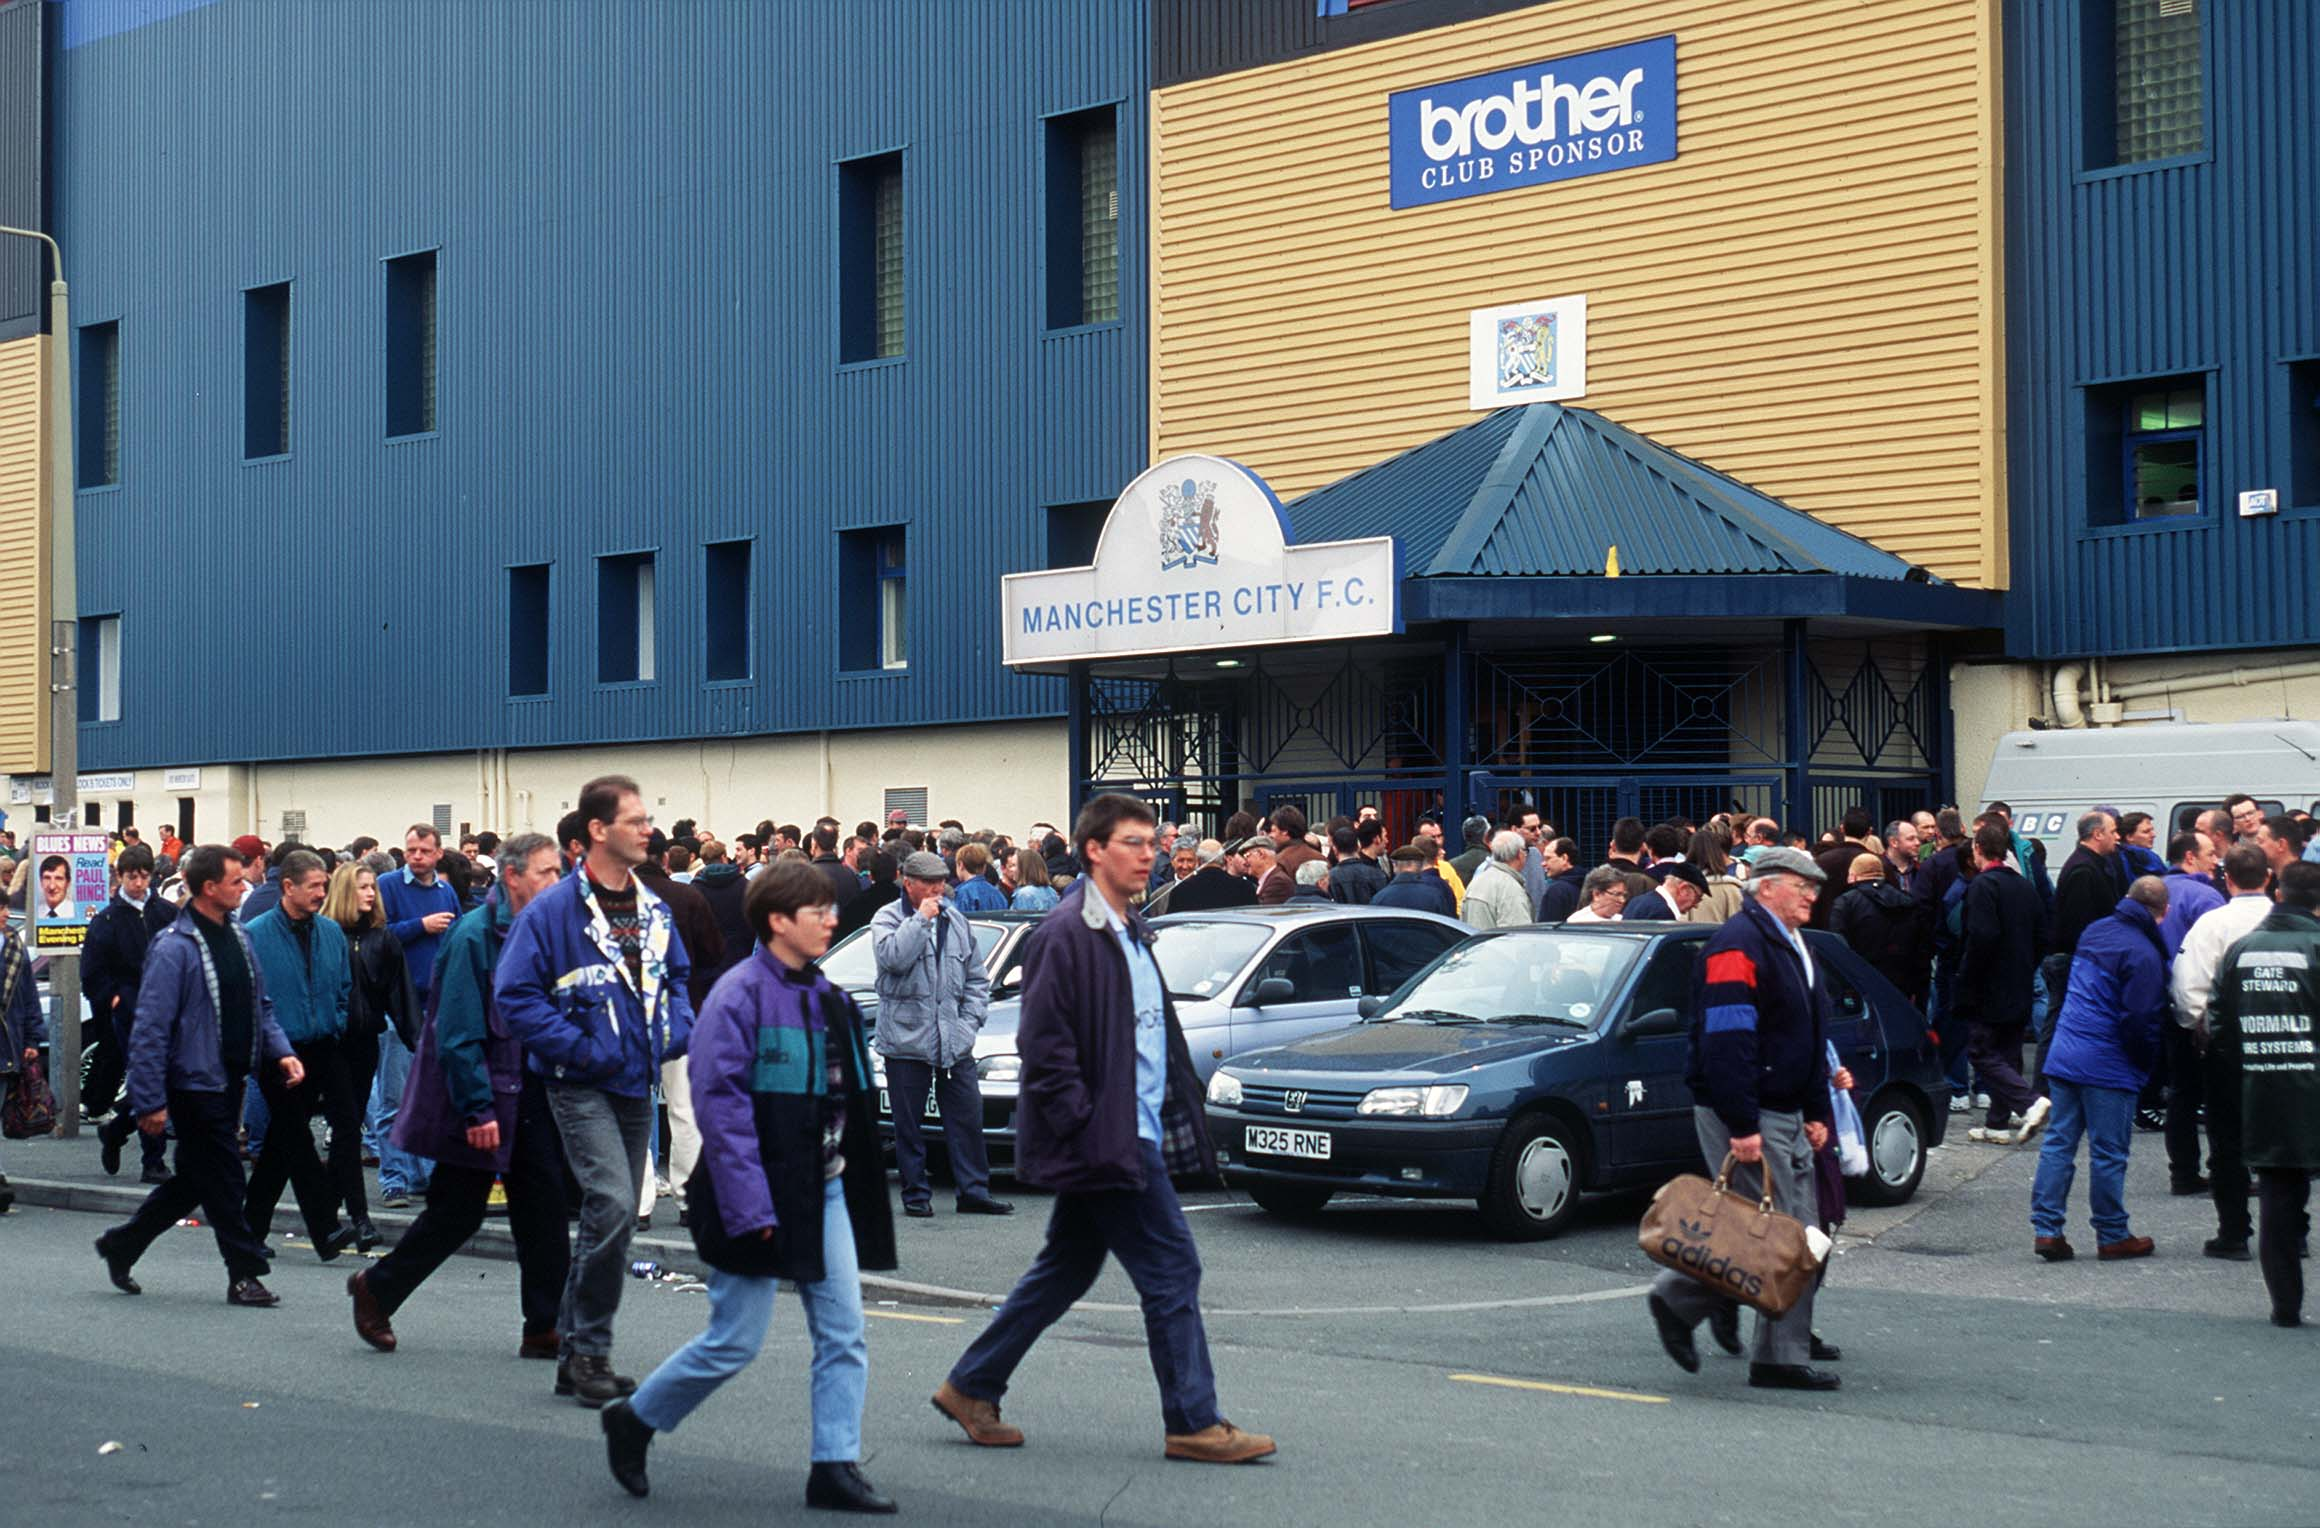 Main entrance to Maine Road stadium. - FOTO:Mark Leech/Getty Images)